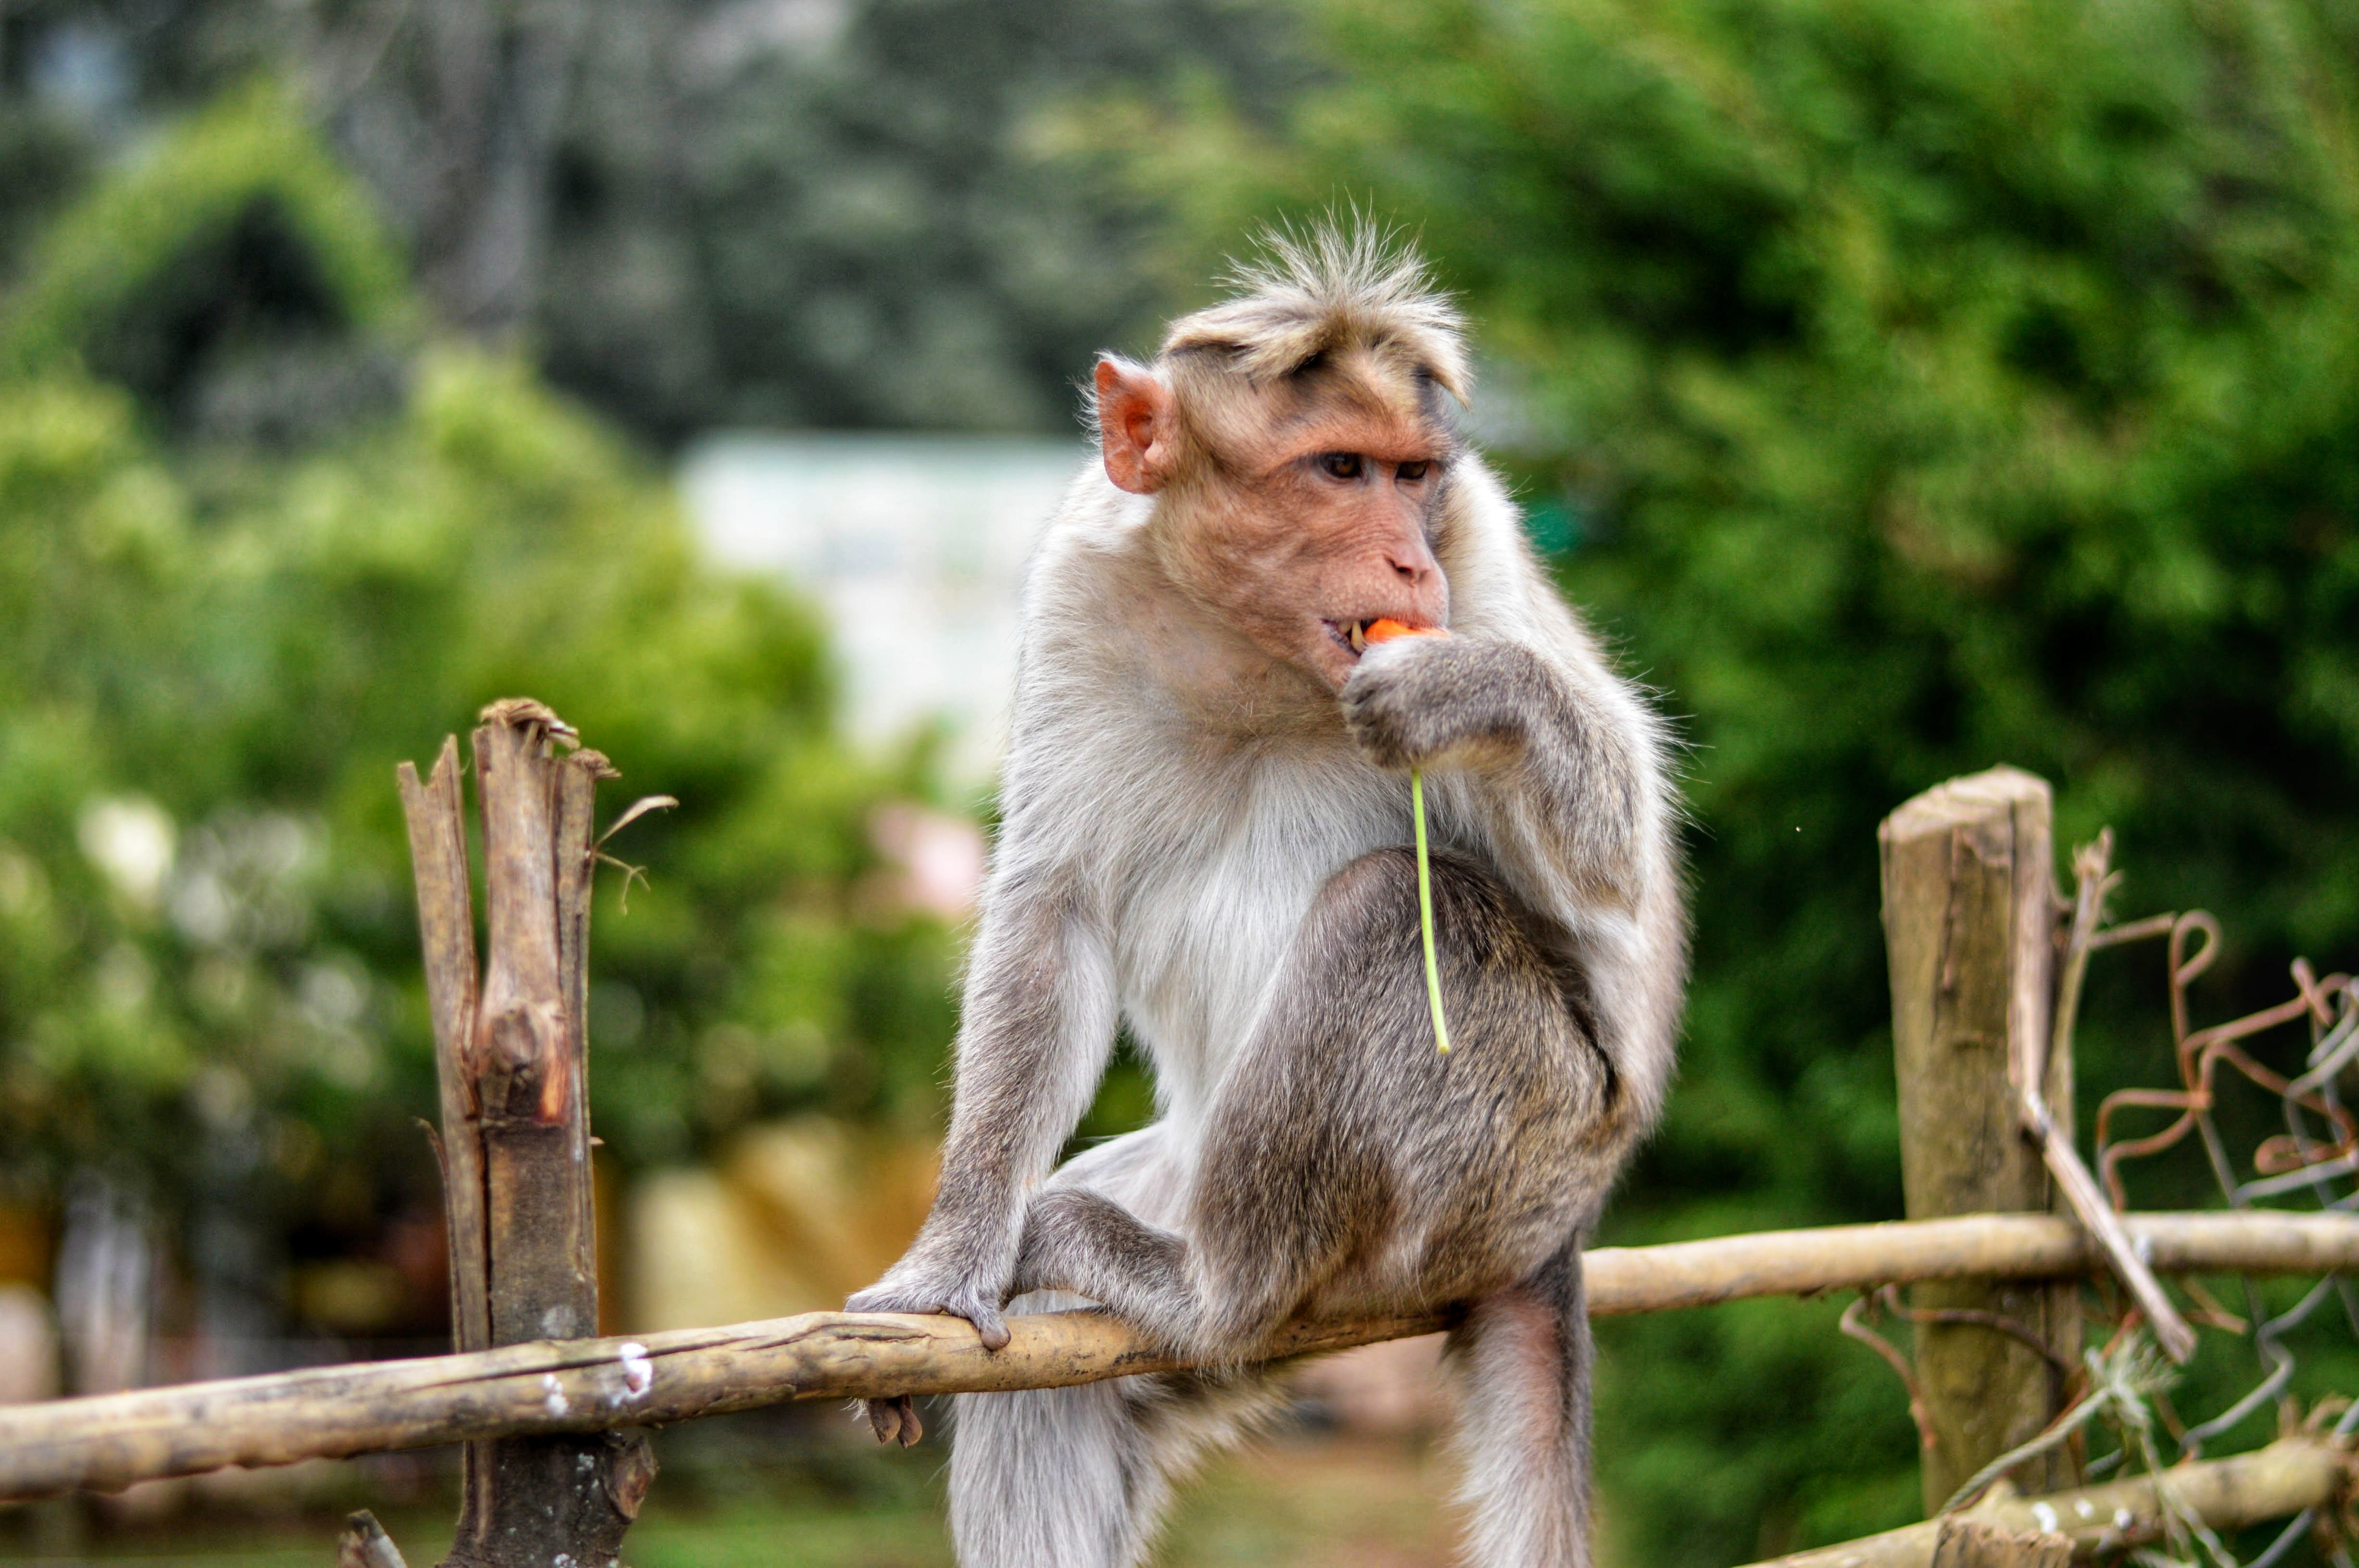 white monkey eating fruit while on brown bamboo fence